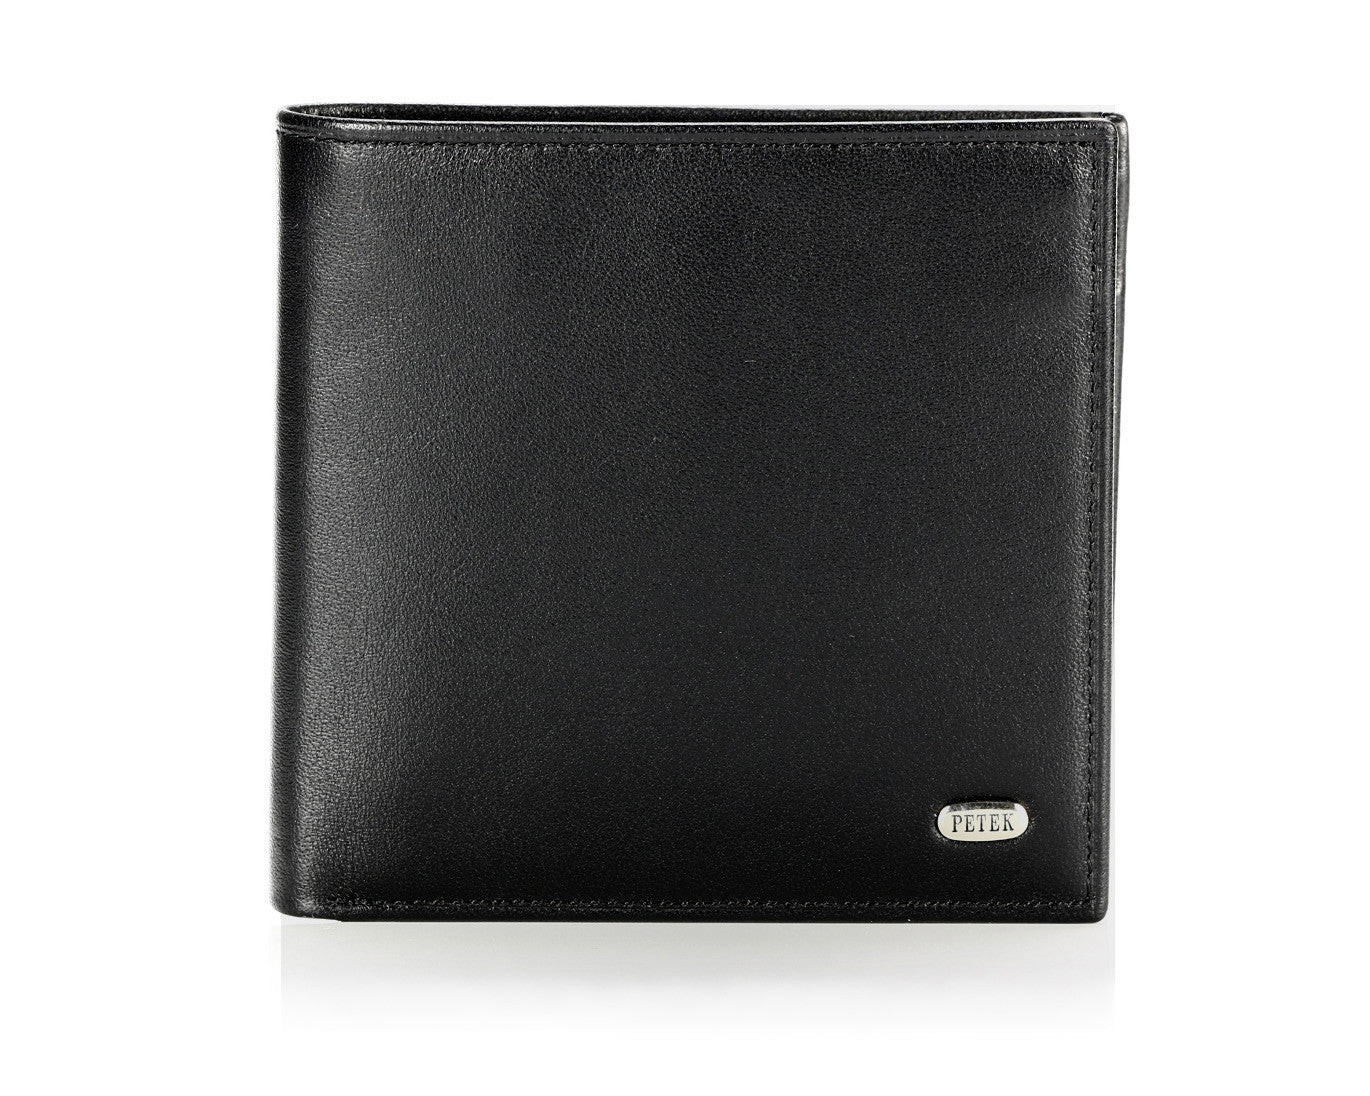 121, Petek 1855, Solid Black, Men's Leather Wallet